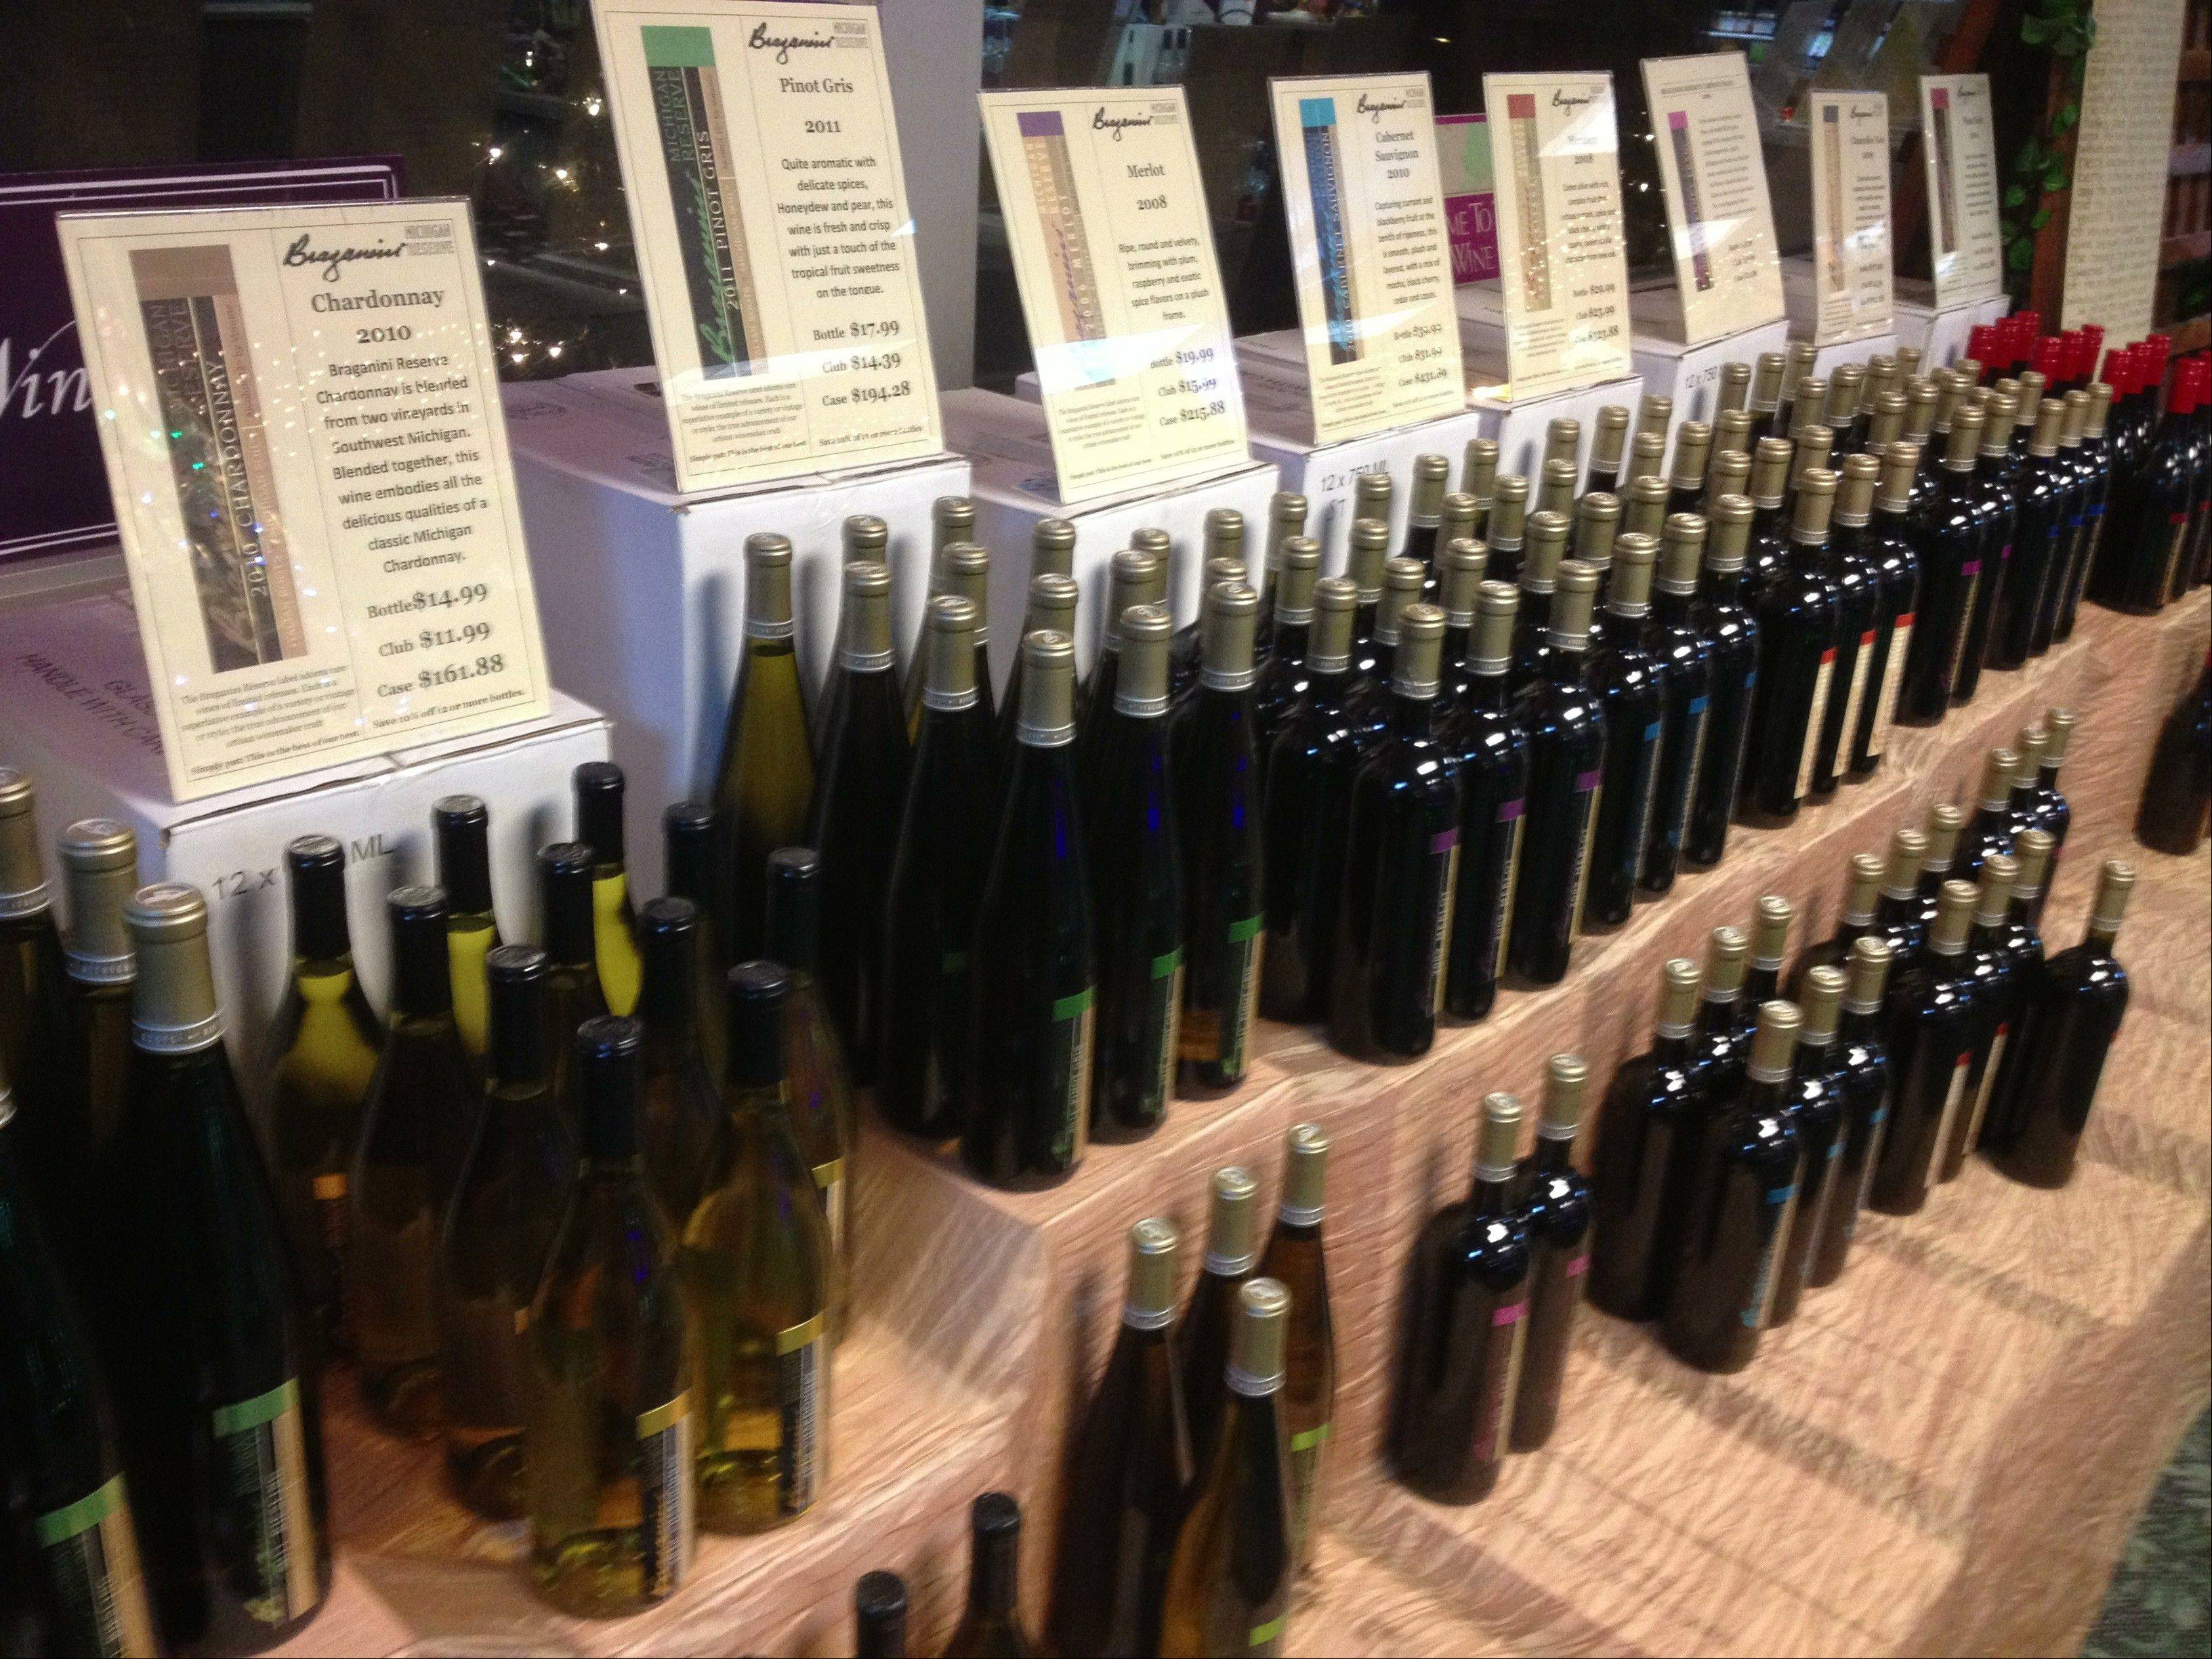 St. Julians Winery offers a nice array of whites and an extensive gift shop.